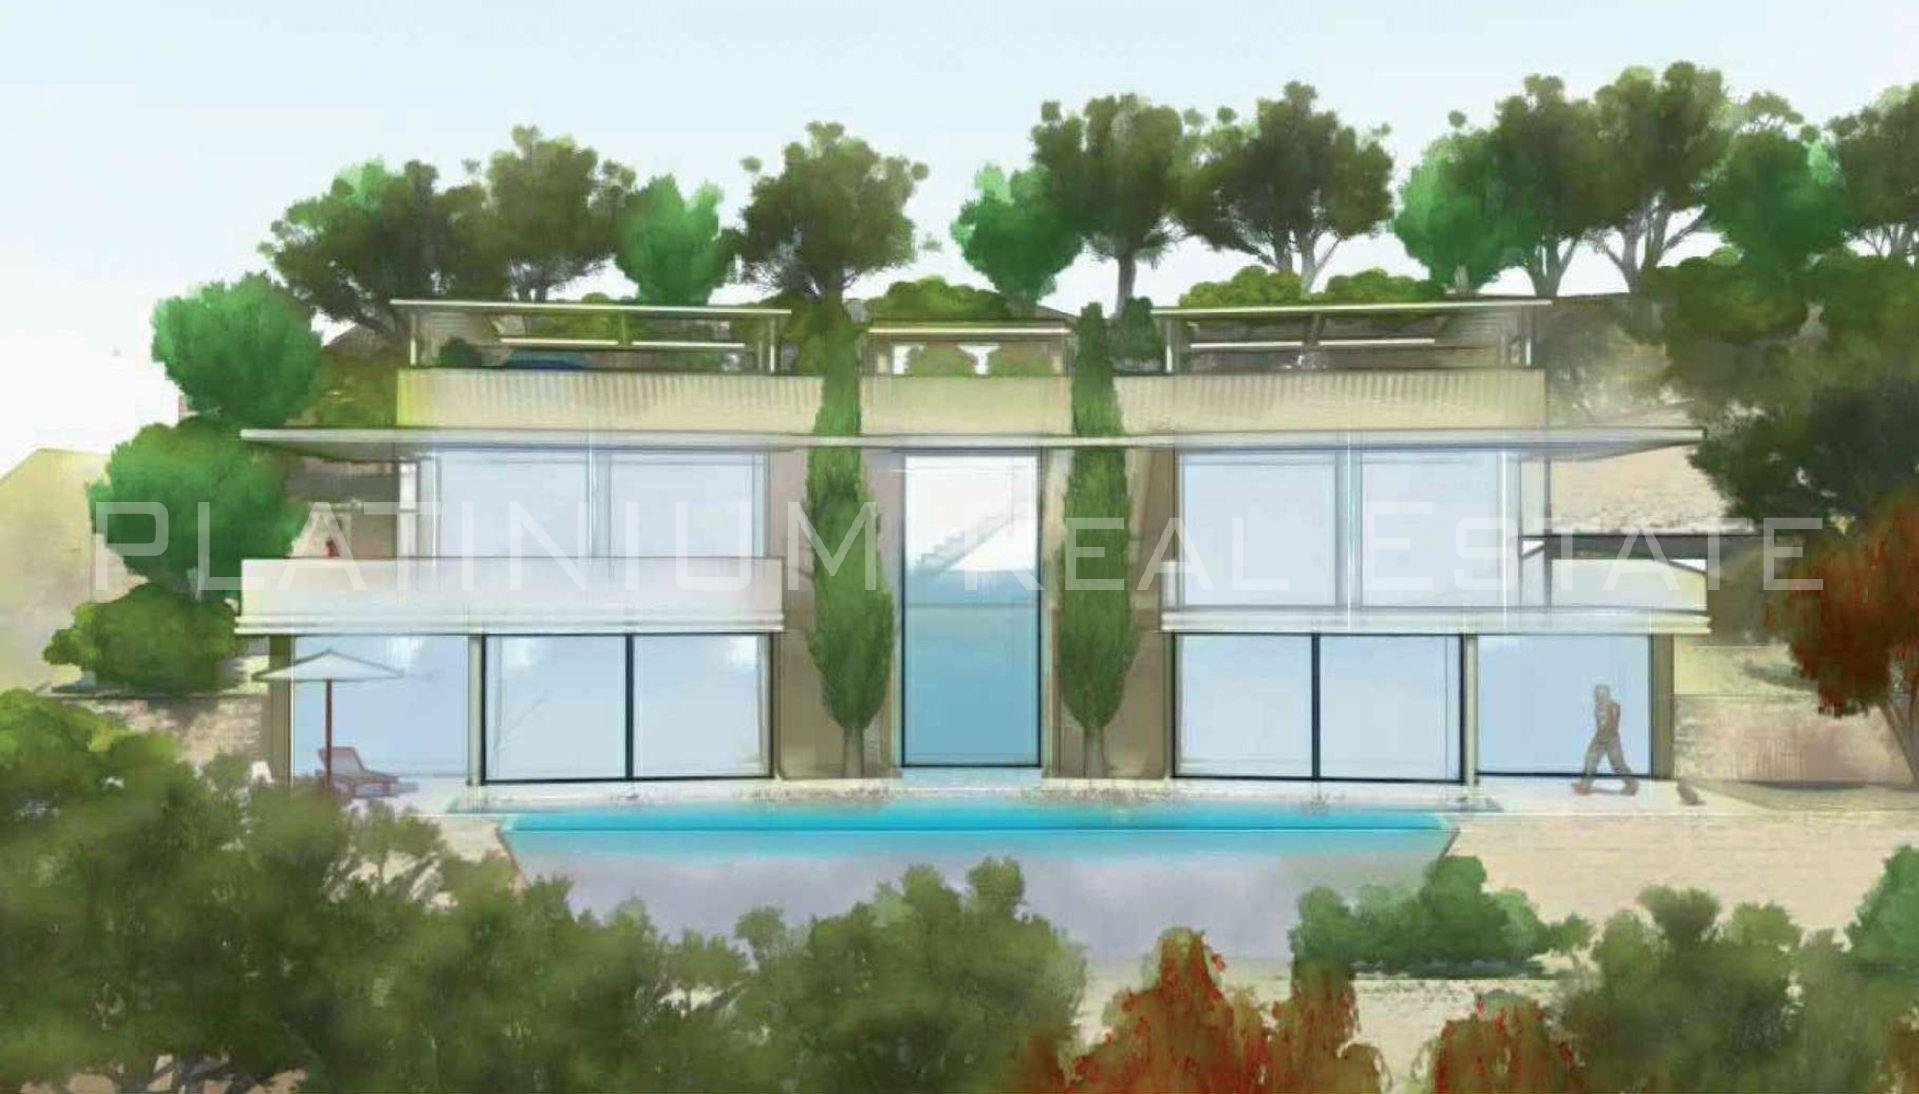 ROQUEBRUNE-CAP-MARTIN Villa 251 m2 habitable + 80 m2 garage - Panoramic sea view